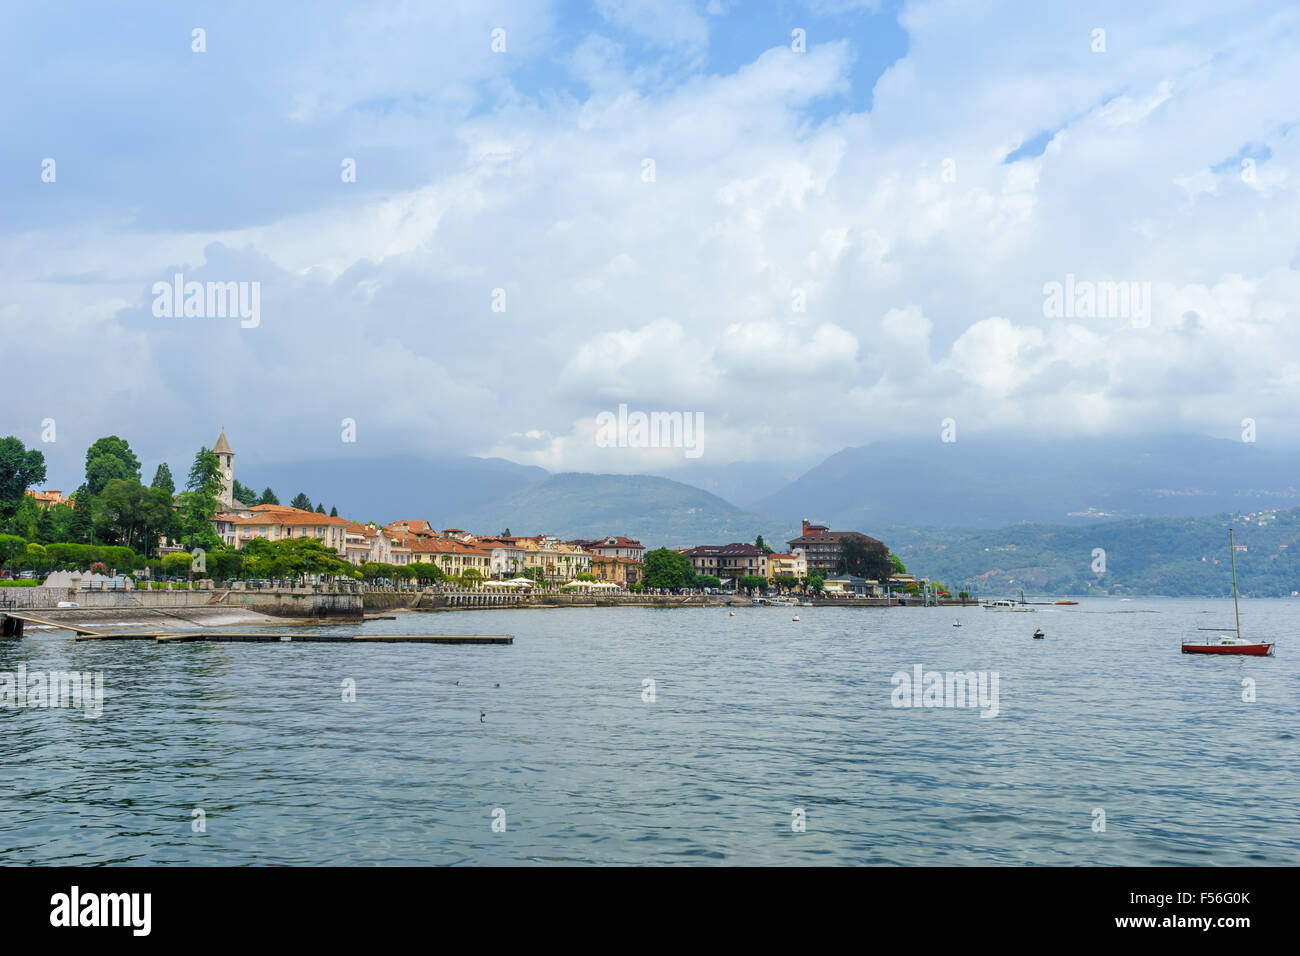 View of Ascona from the harbor on Lake Maggiore in summer. Stock Photo